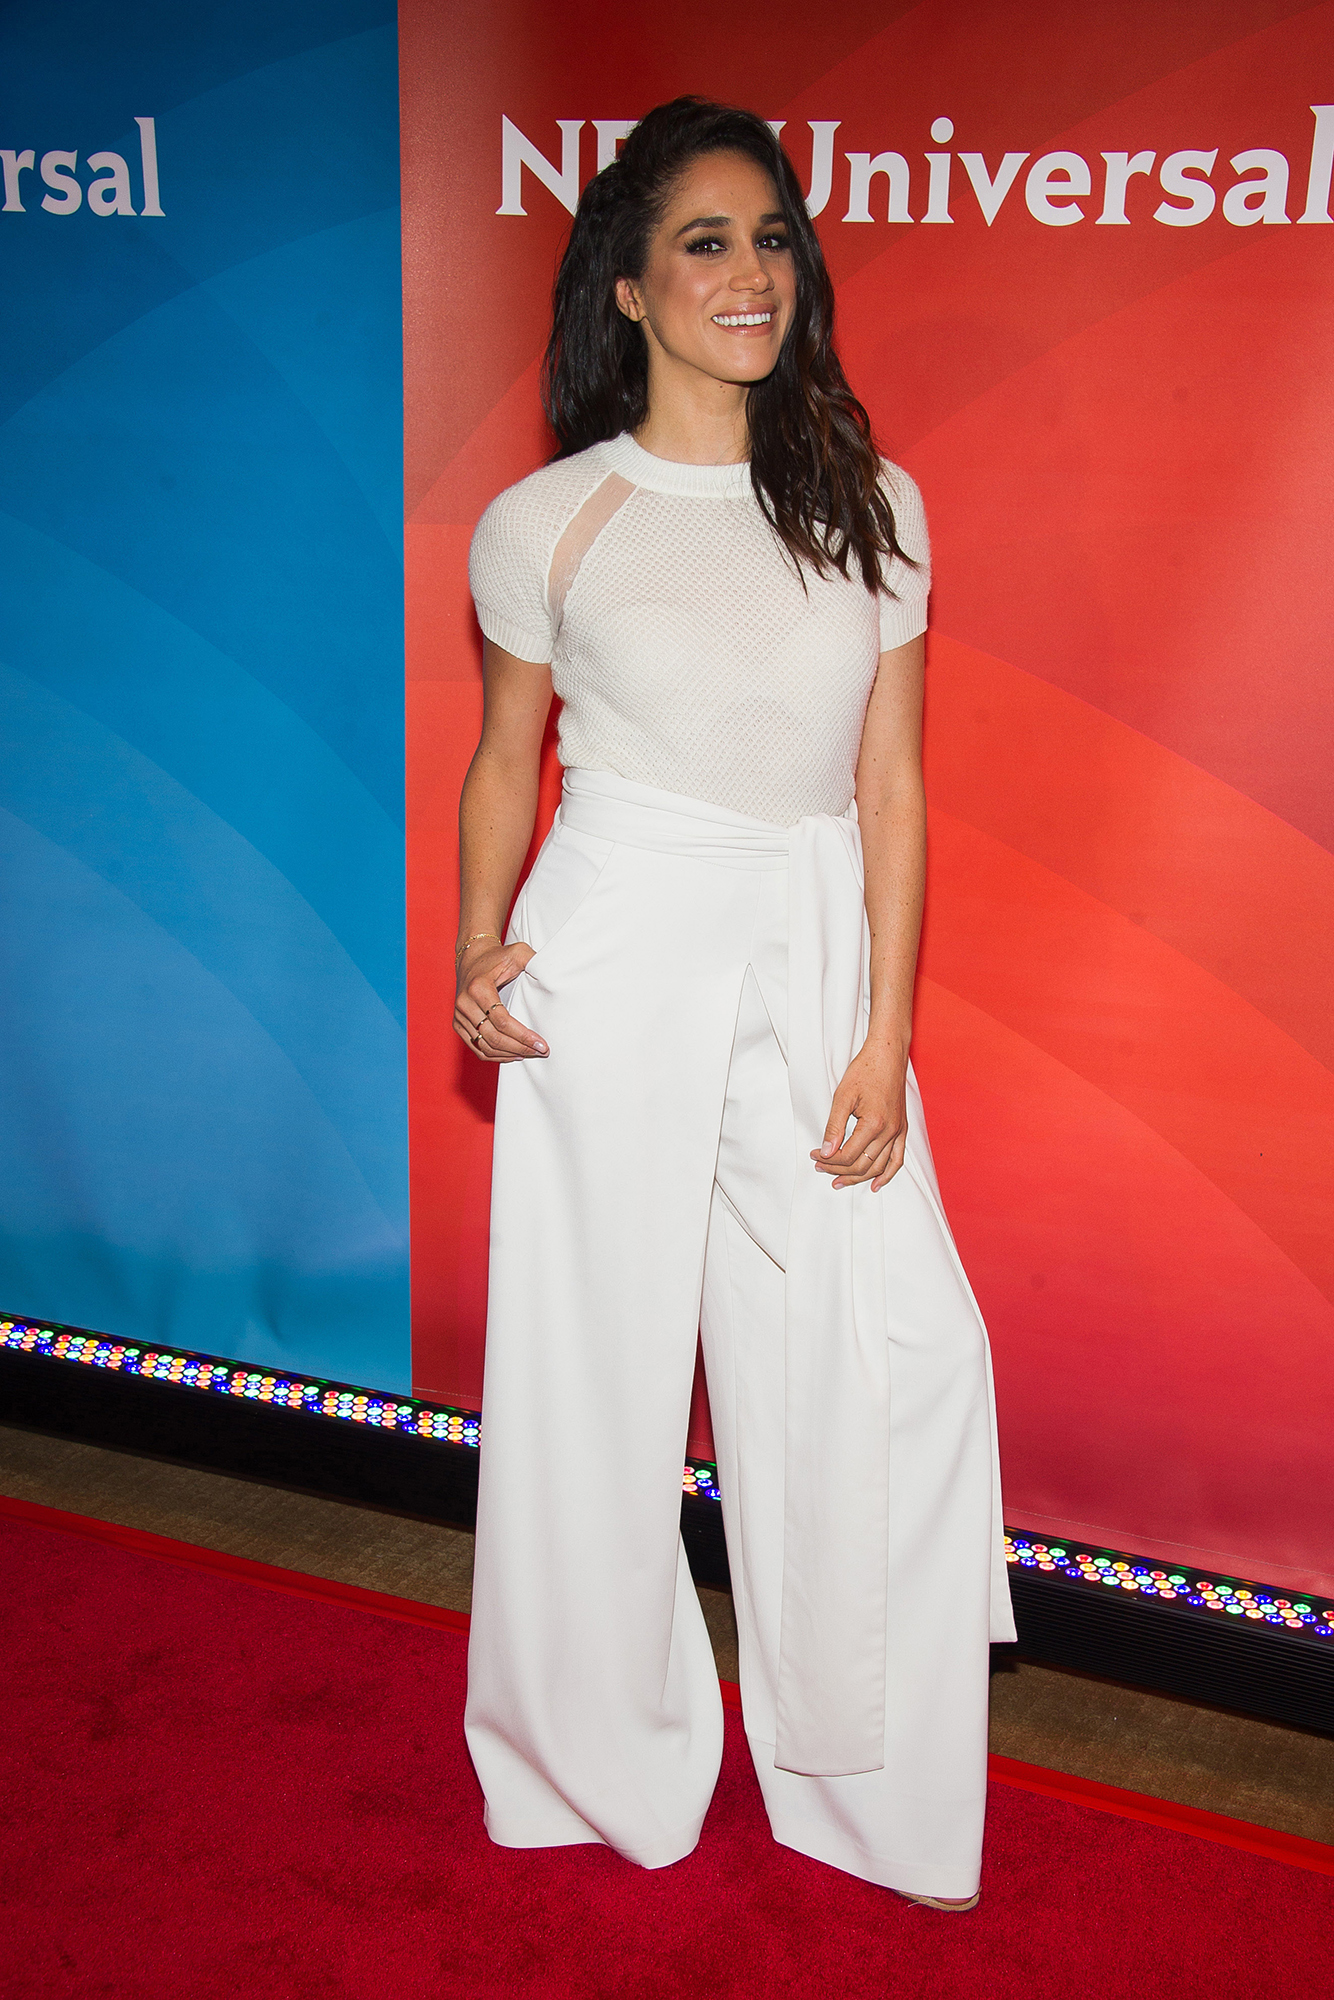 <div class='meta'><div class='origin-logo' data-origin='AP'></div><span class='caption-text' data-credit='Charles Sykes/Invision/AP'>Meghan Markle arrives at the NBCUniversal New York Summer Press Day event at The Four Seasons Hotel on Wednesday, June 24, 2015, in New York.</span></div>